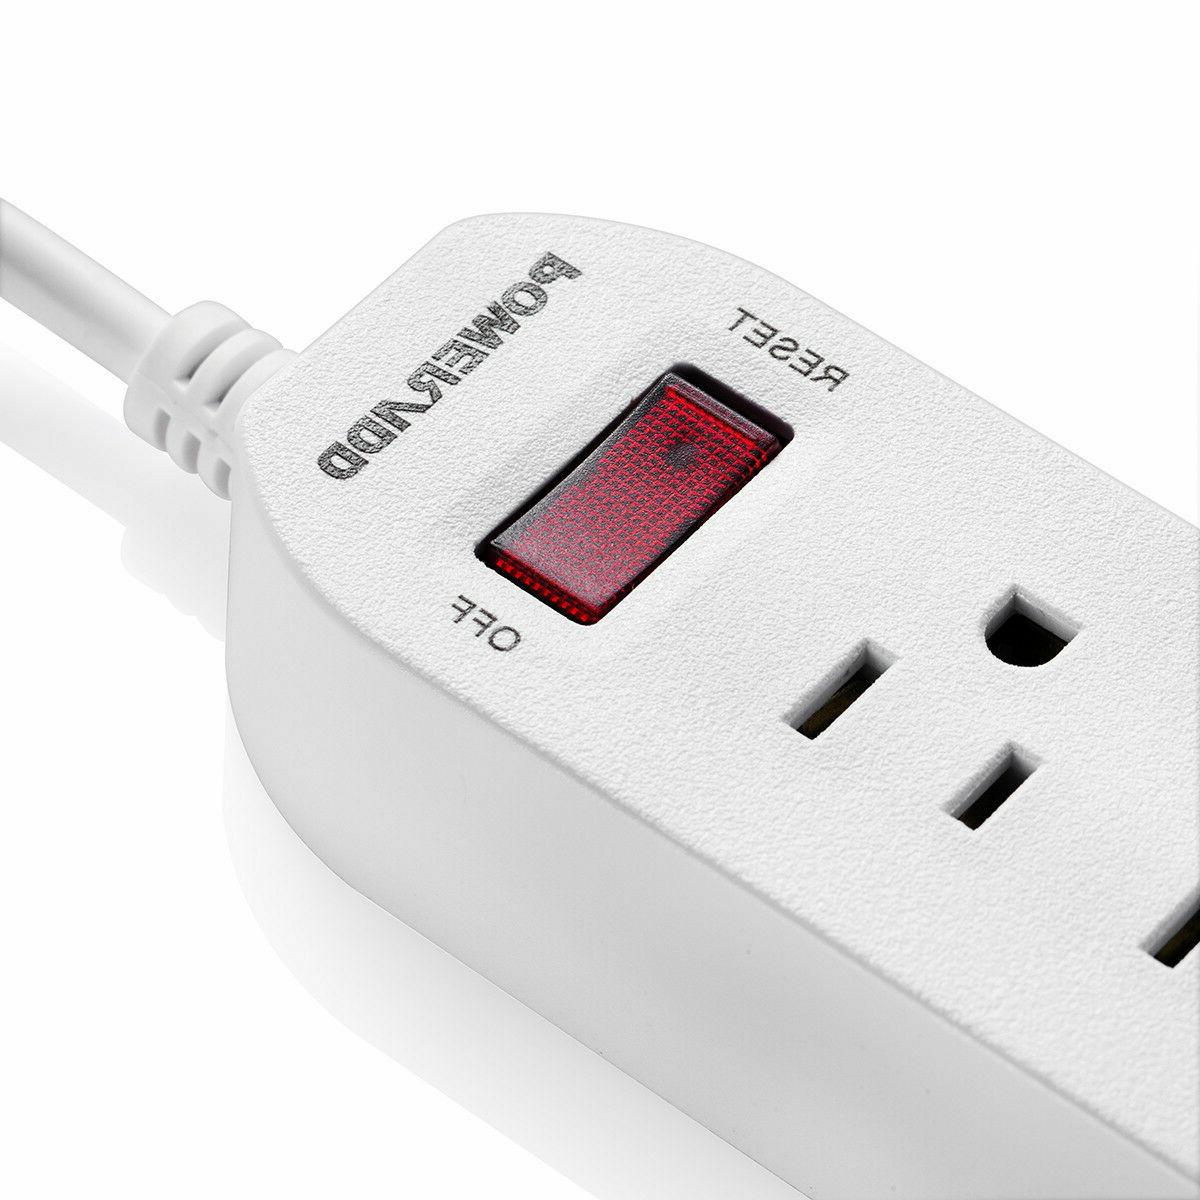 Poweradd Outlet Power 3 Adapter